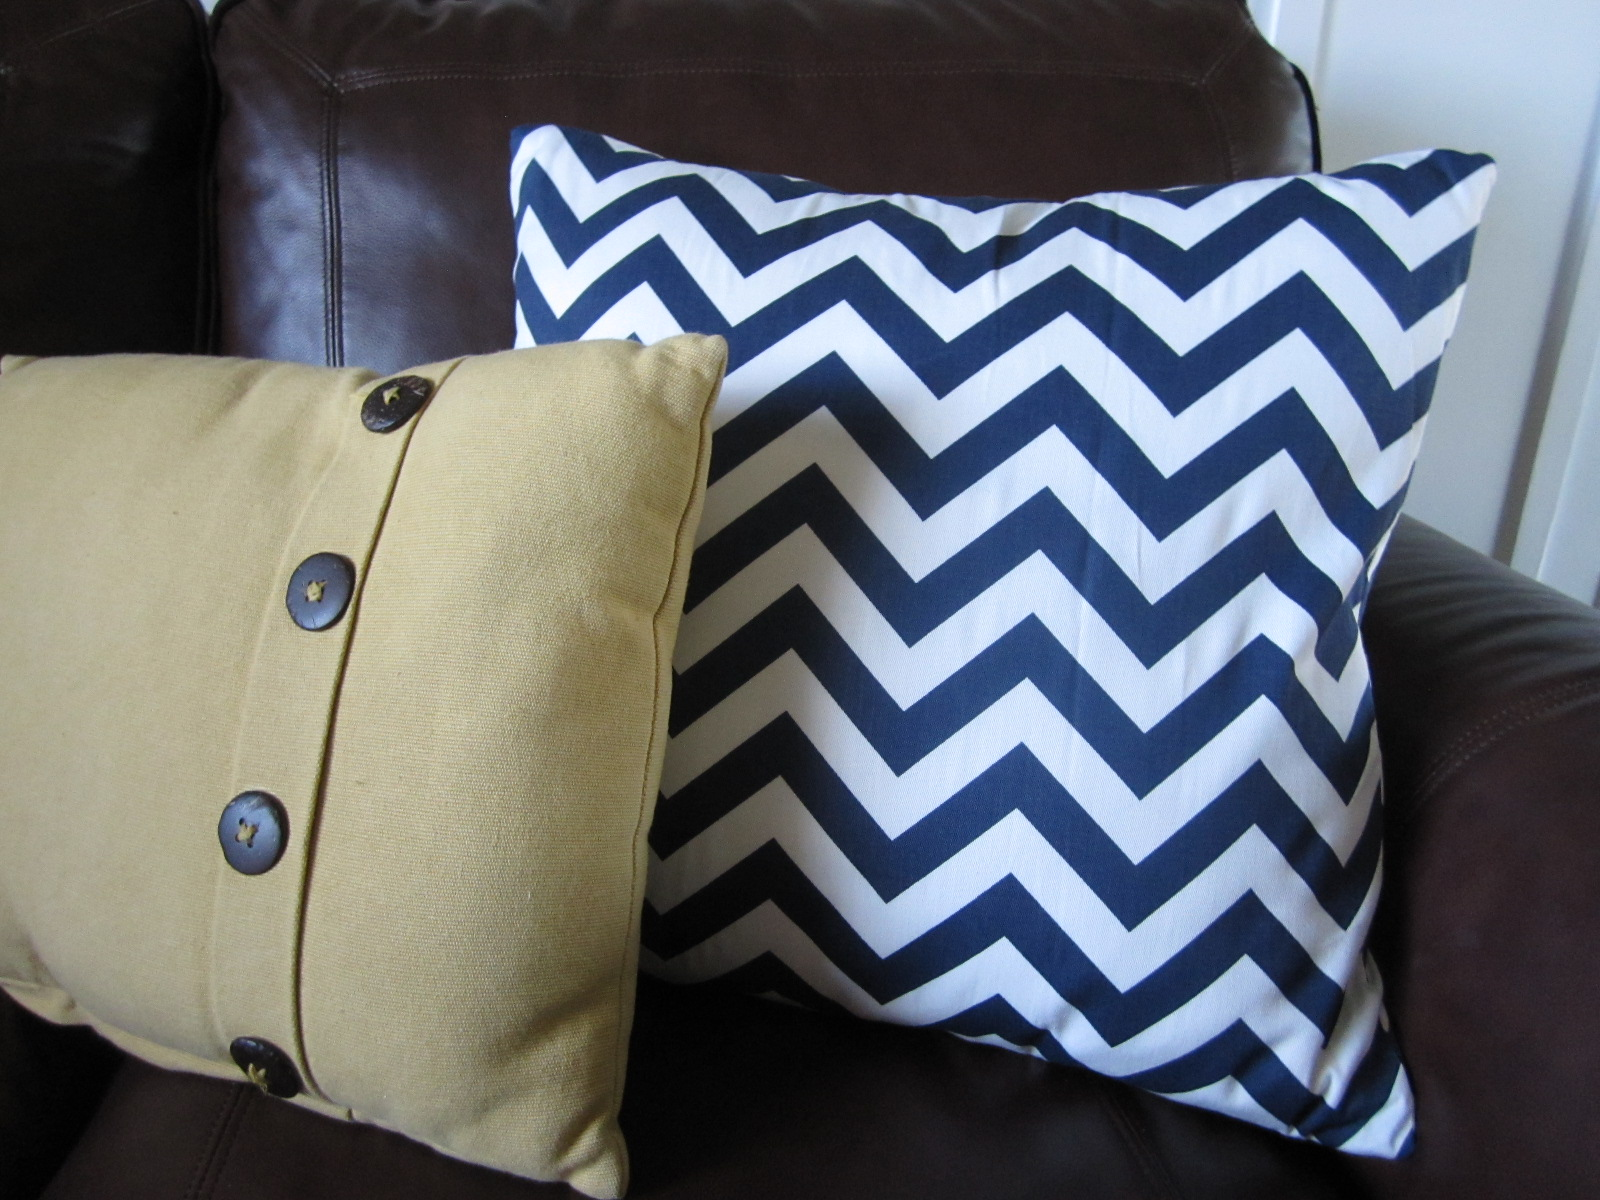 Easy To Make Throw Pillow Covers : KrisKraft: Easy DIY Throw Pillows